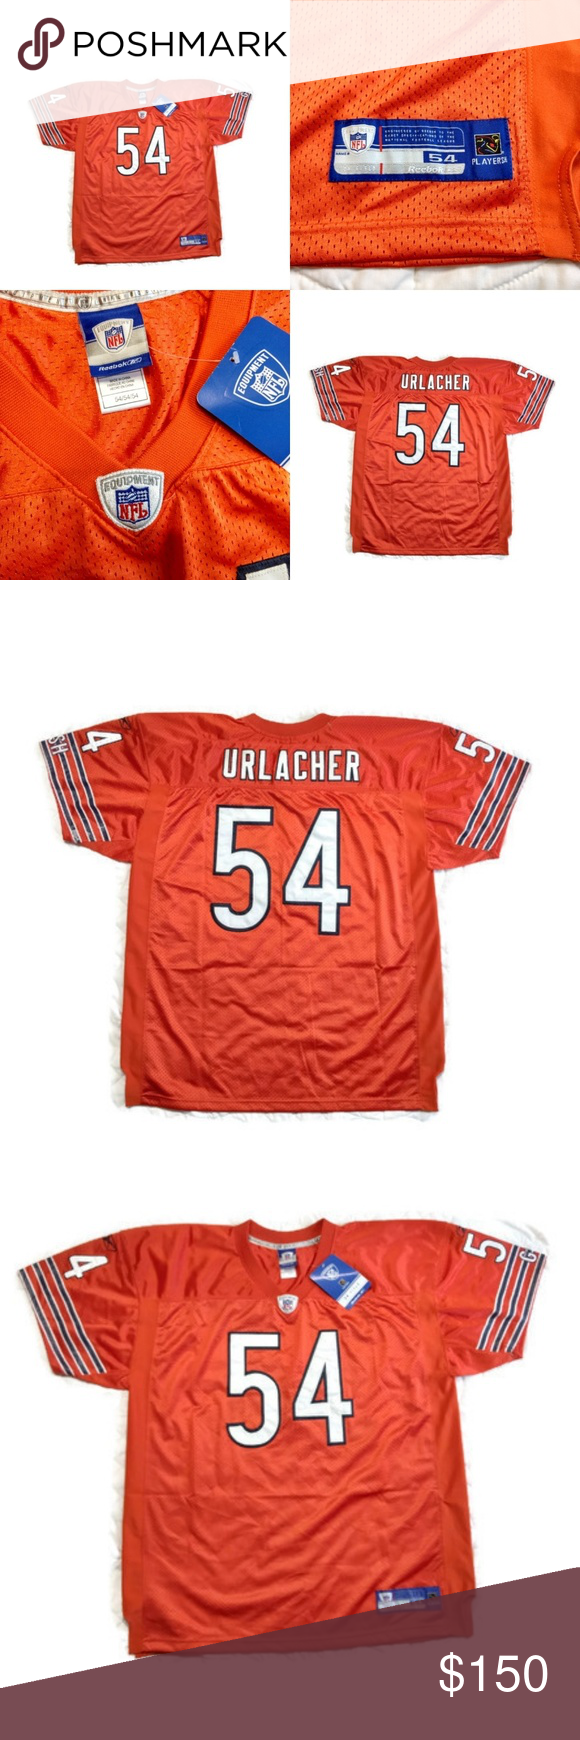 competitive price a4baf 5b024 Reebok Chicago Bears Urlacher NFL On Field Jersey New with ...